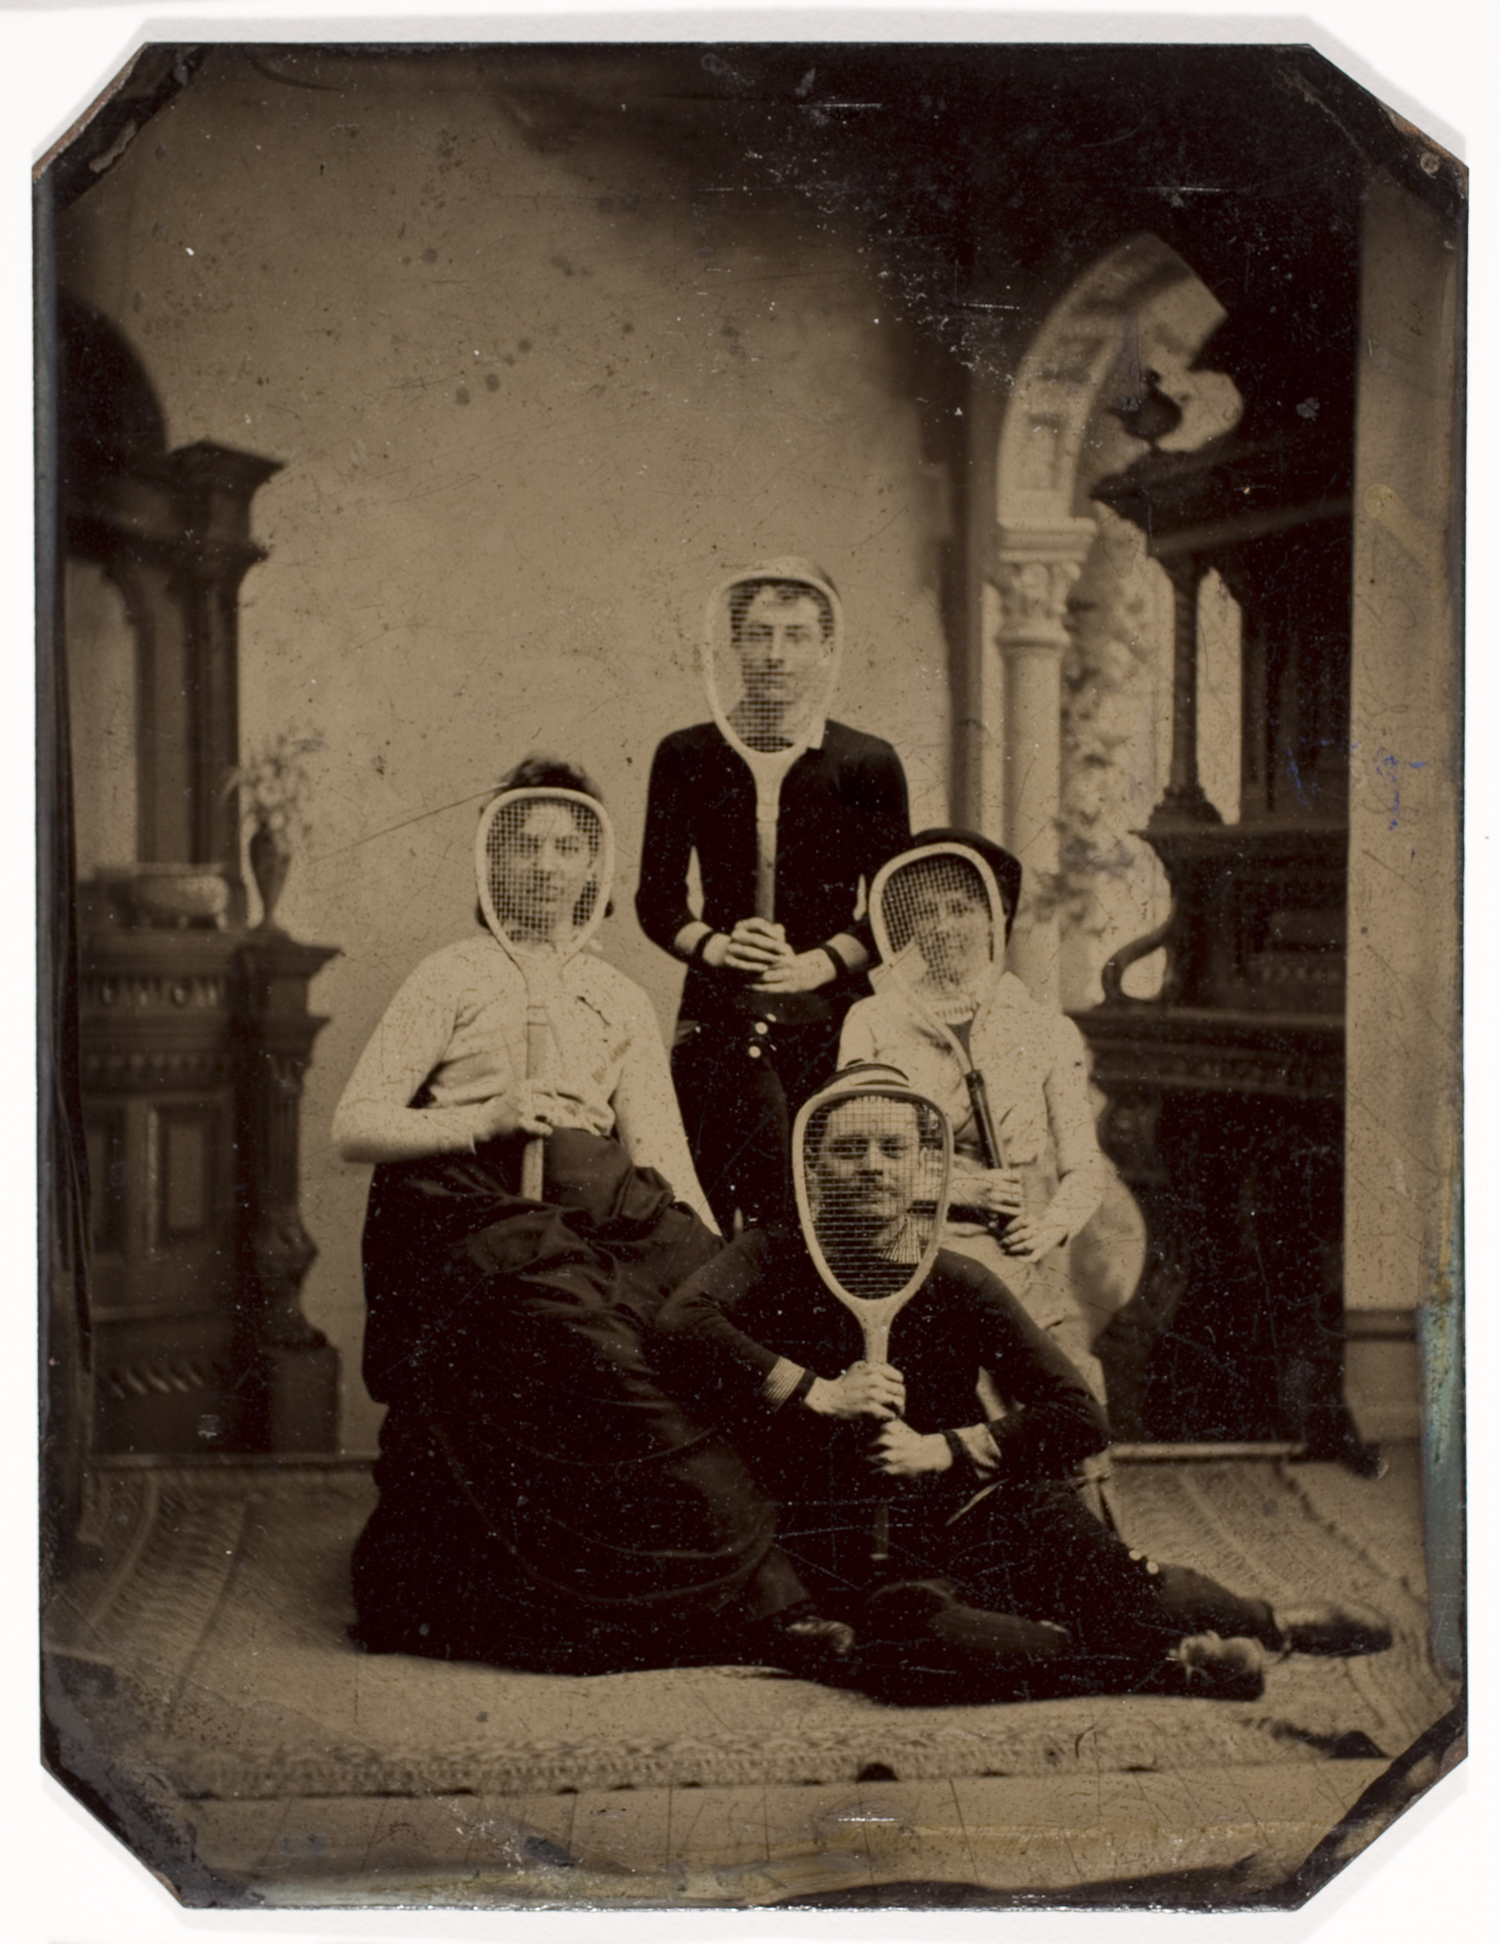 Unidentified Photographer, (Two Unidentified Women and Two Men with Tennis Rackets), ca. 1880, Court